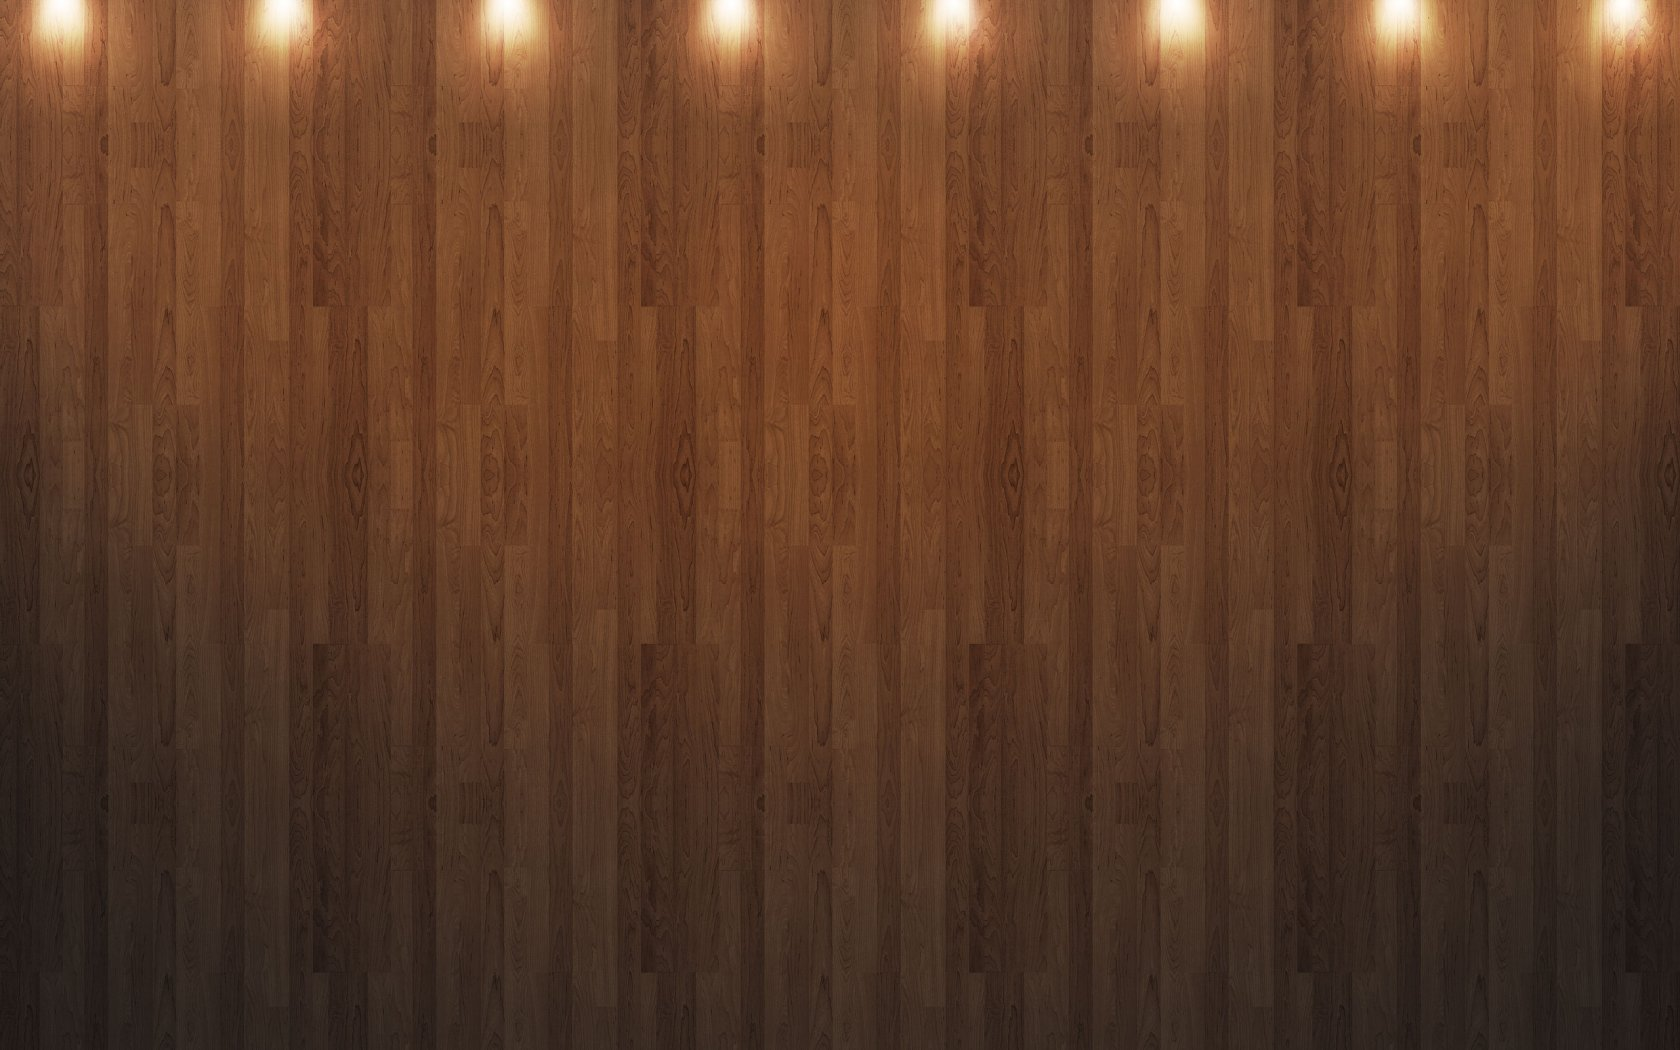 Wood Wallpaper 04